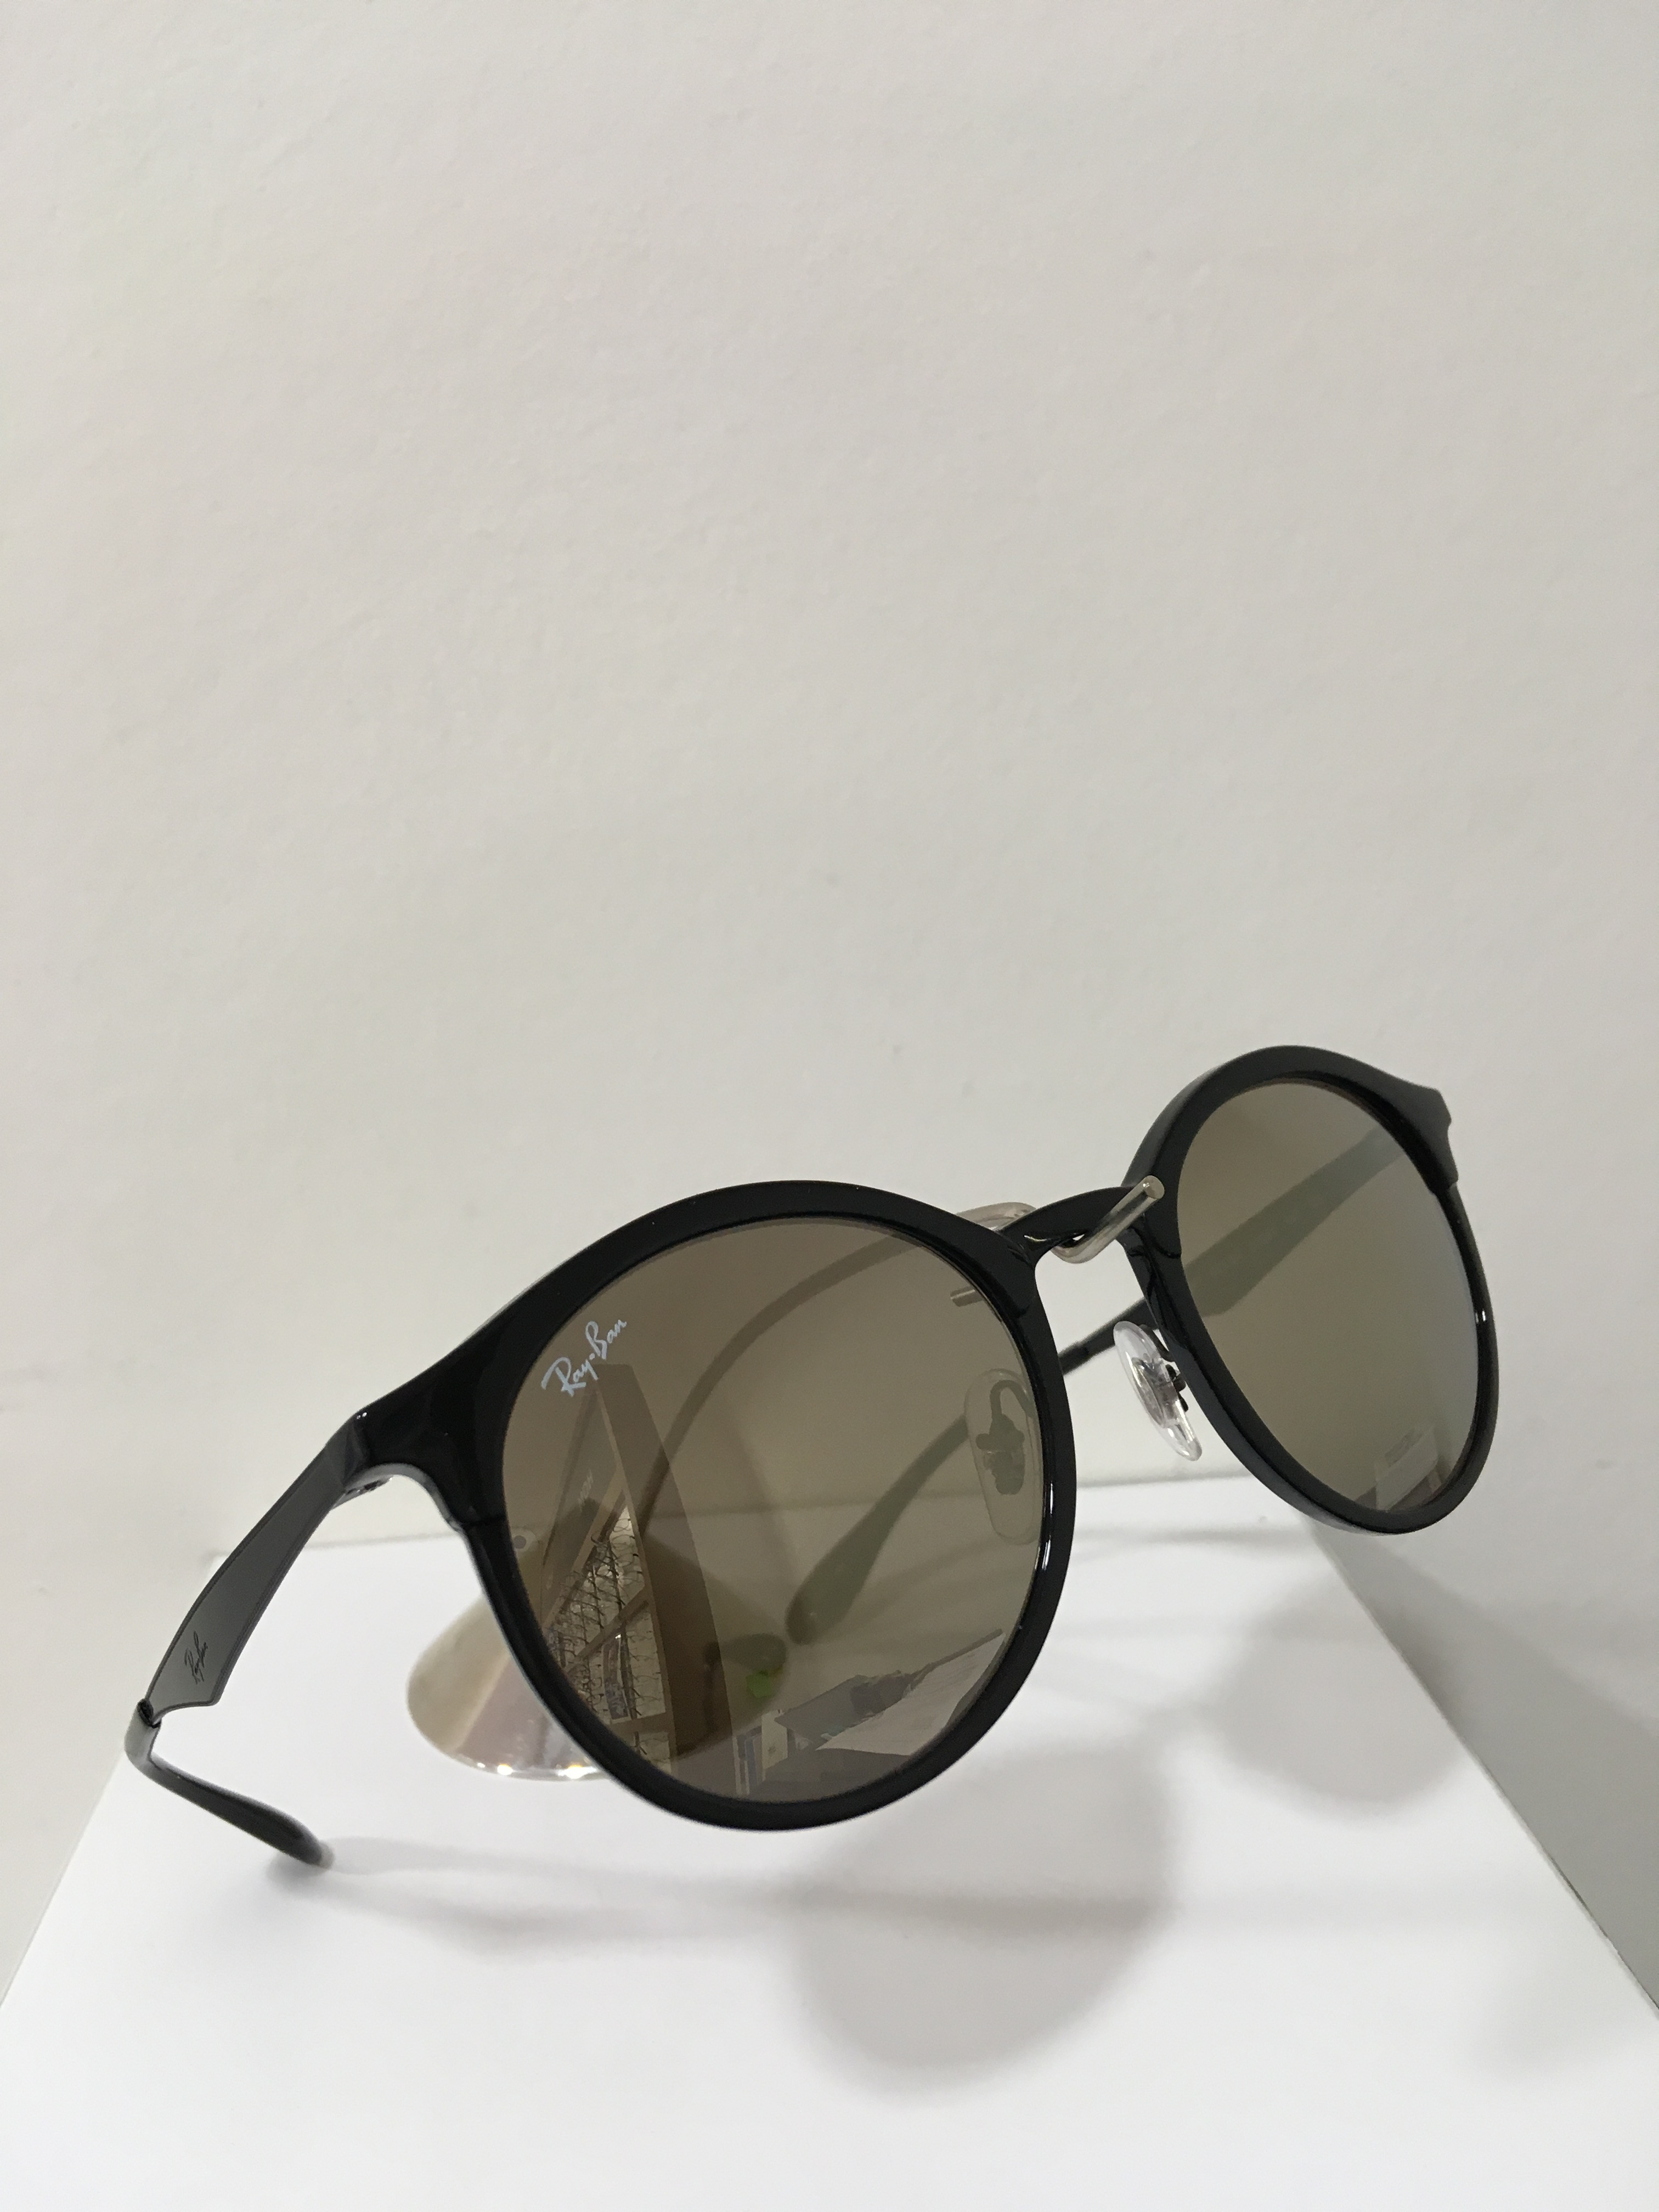 Solaire femme RAY-BAN 83864ab4a6e8